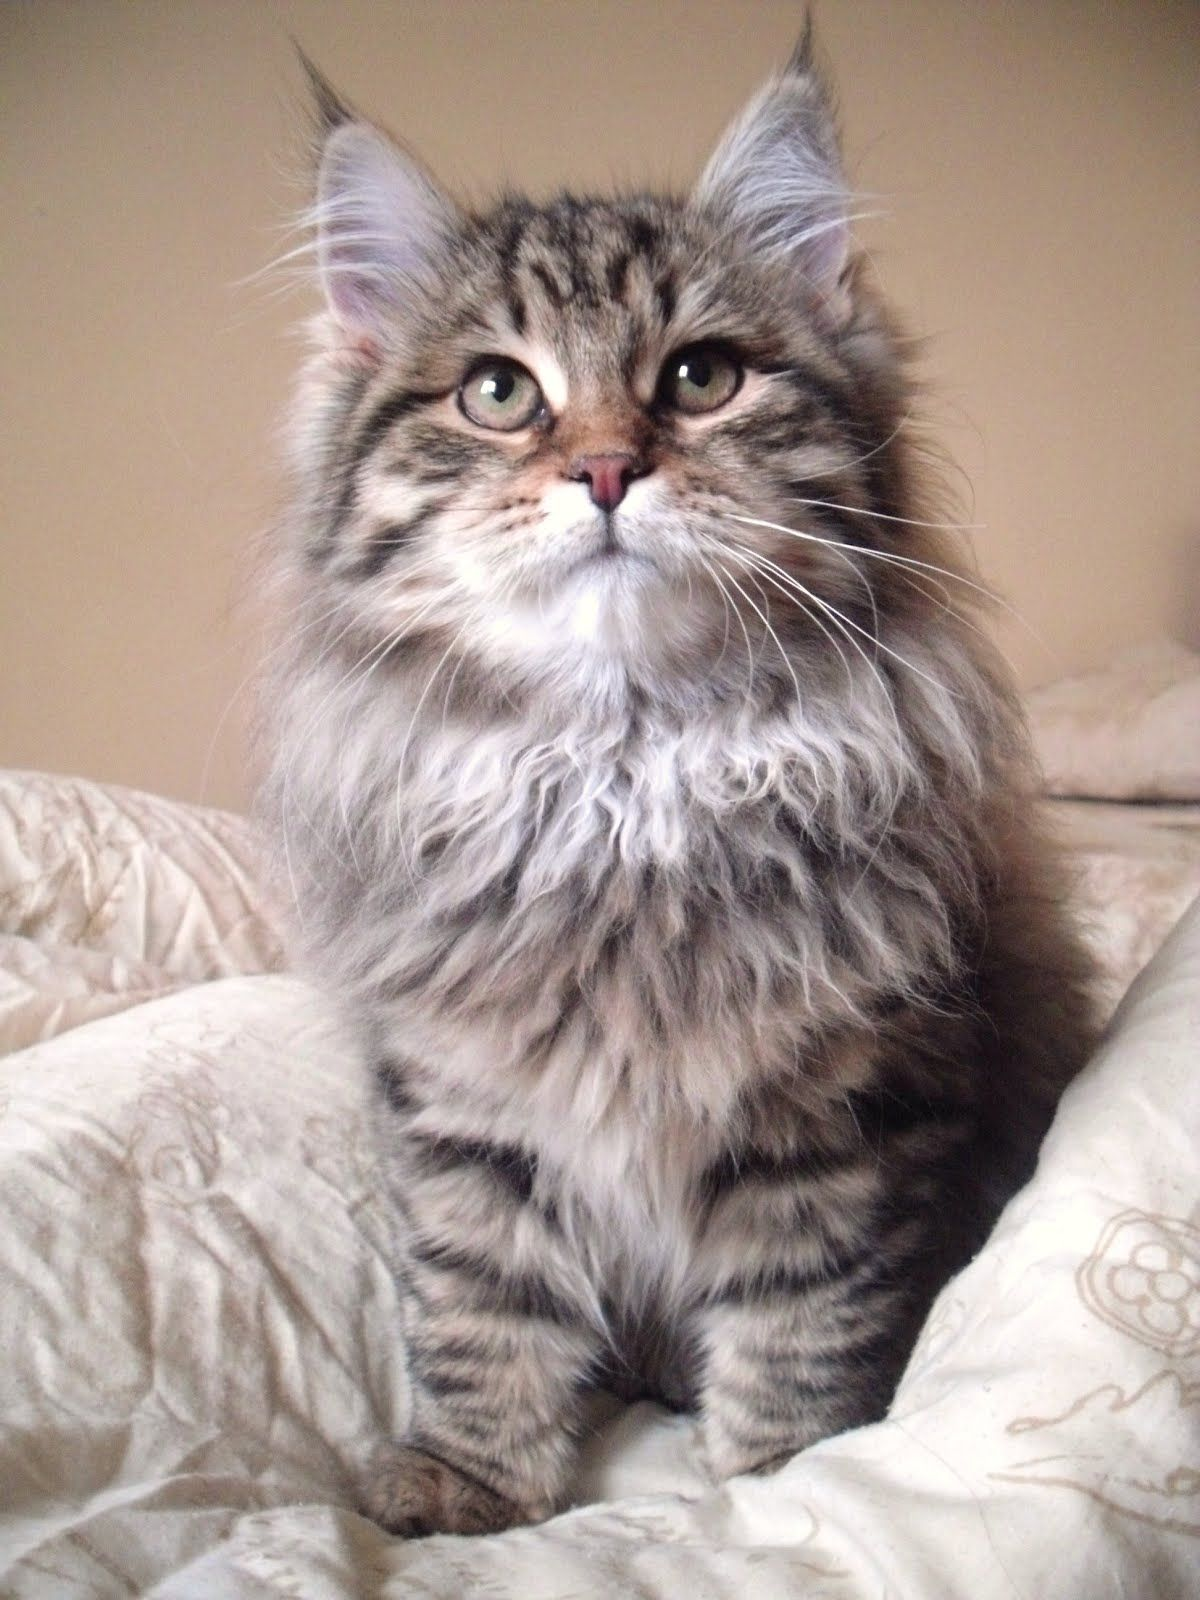 Hypoallergenic Siberian Cats And Siberian Kittens For Sale And Adoption In Grand Rapids Mi Siberian Kittens Siberian Cat Kitten For Sale